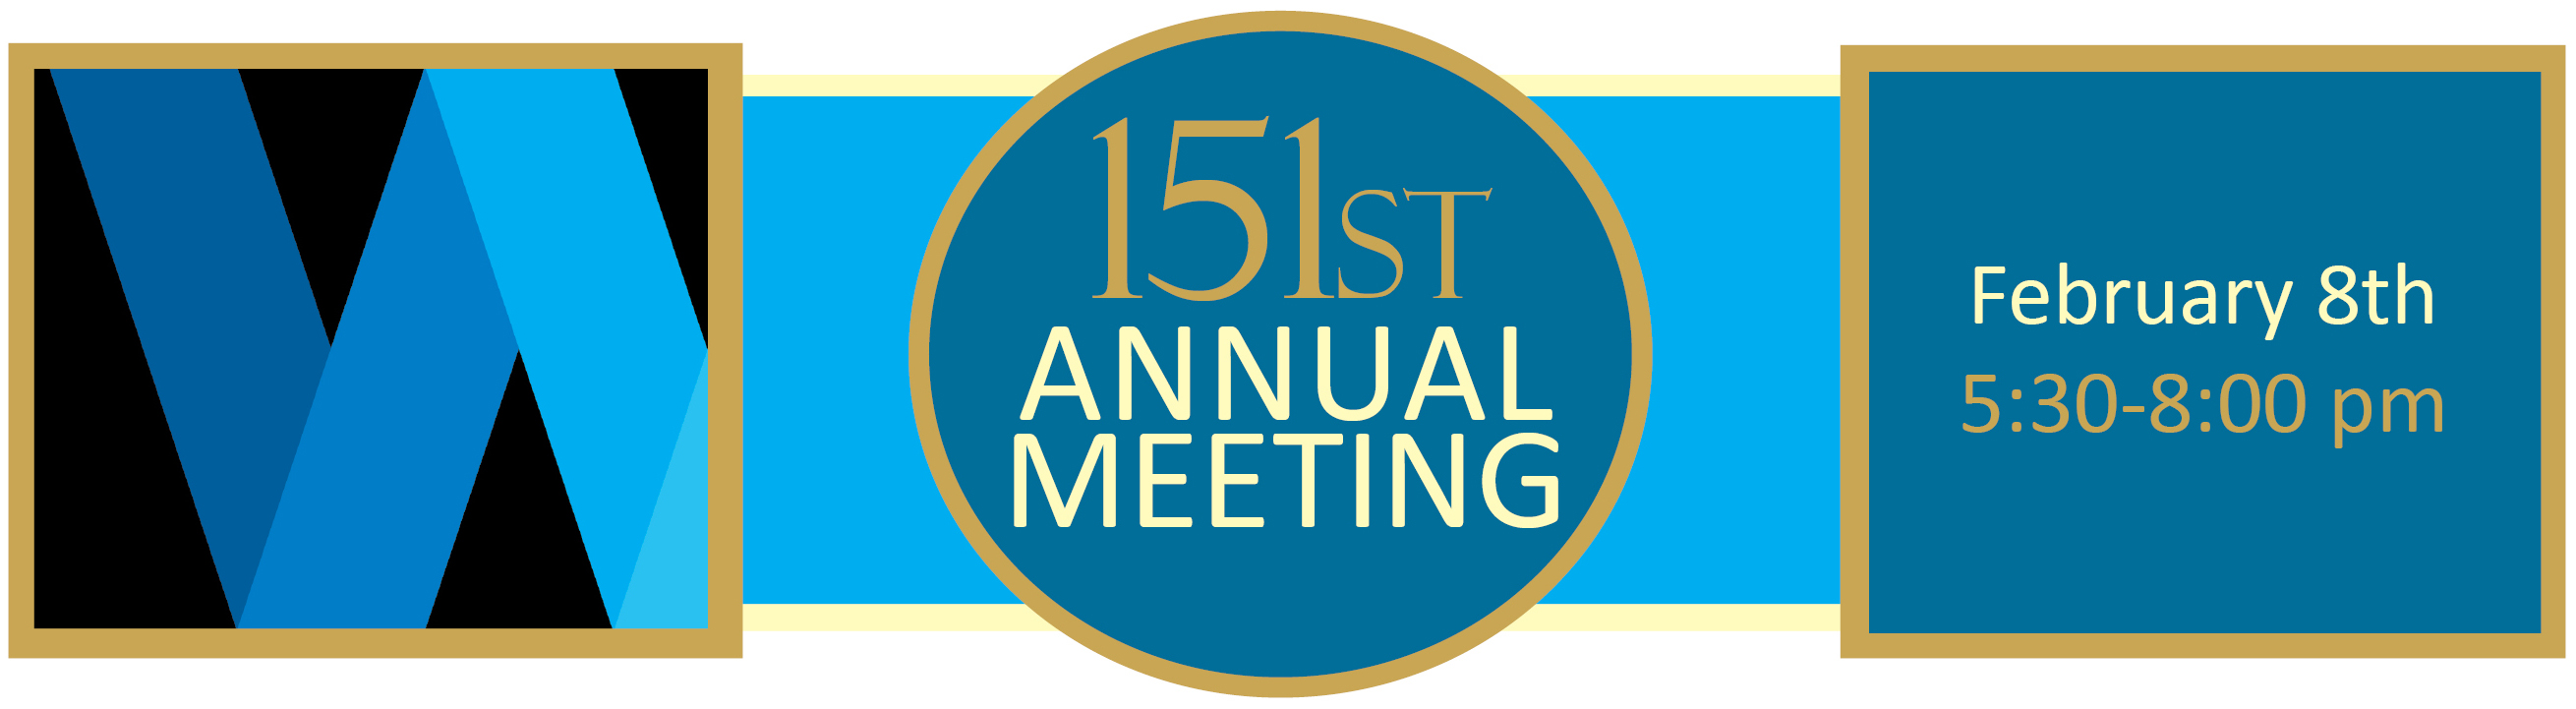 151st Annual Meeting Banner